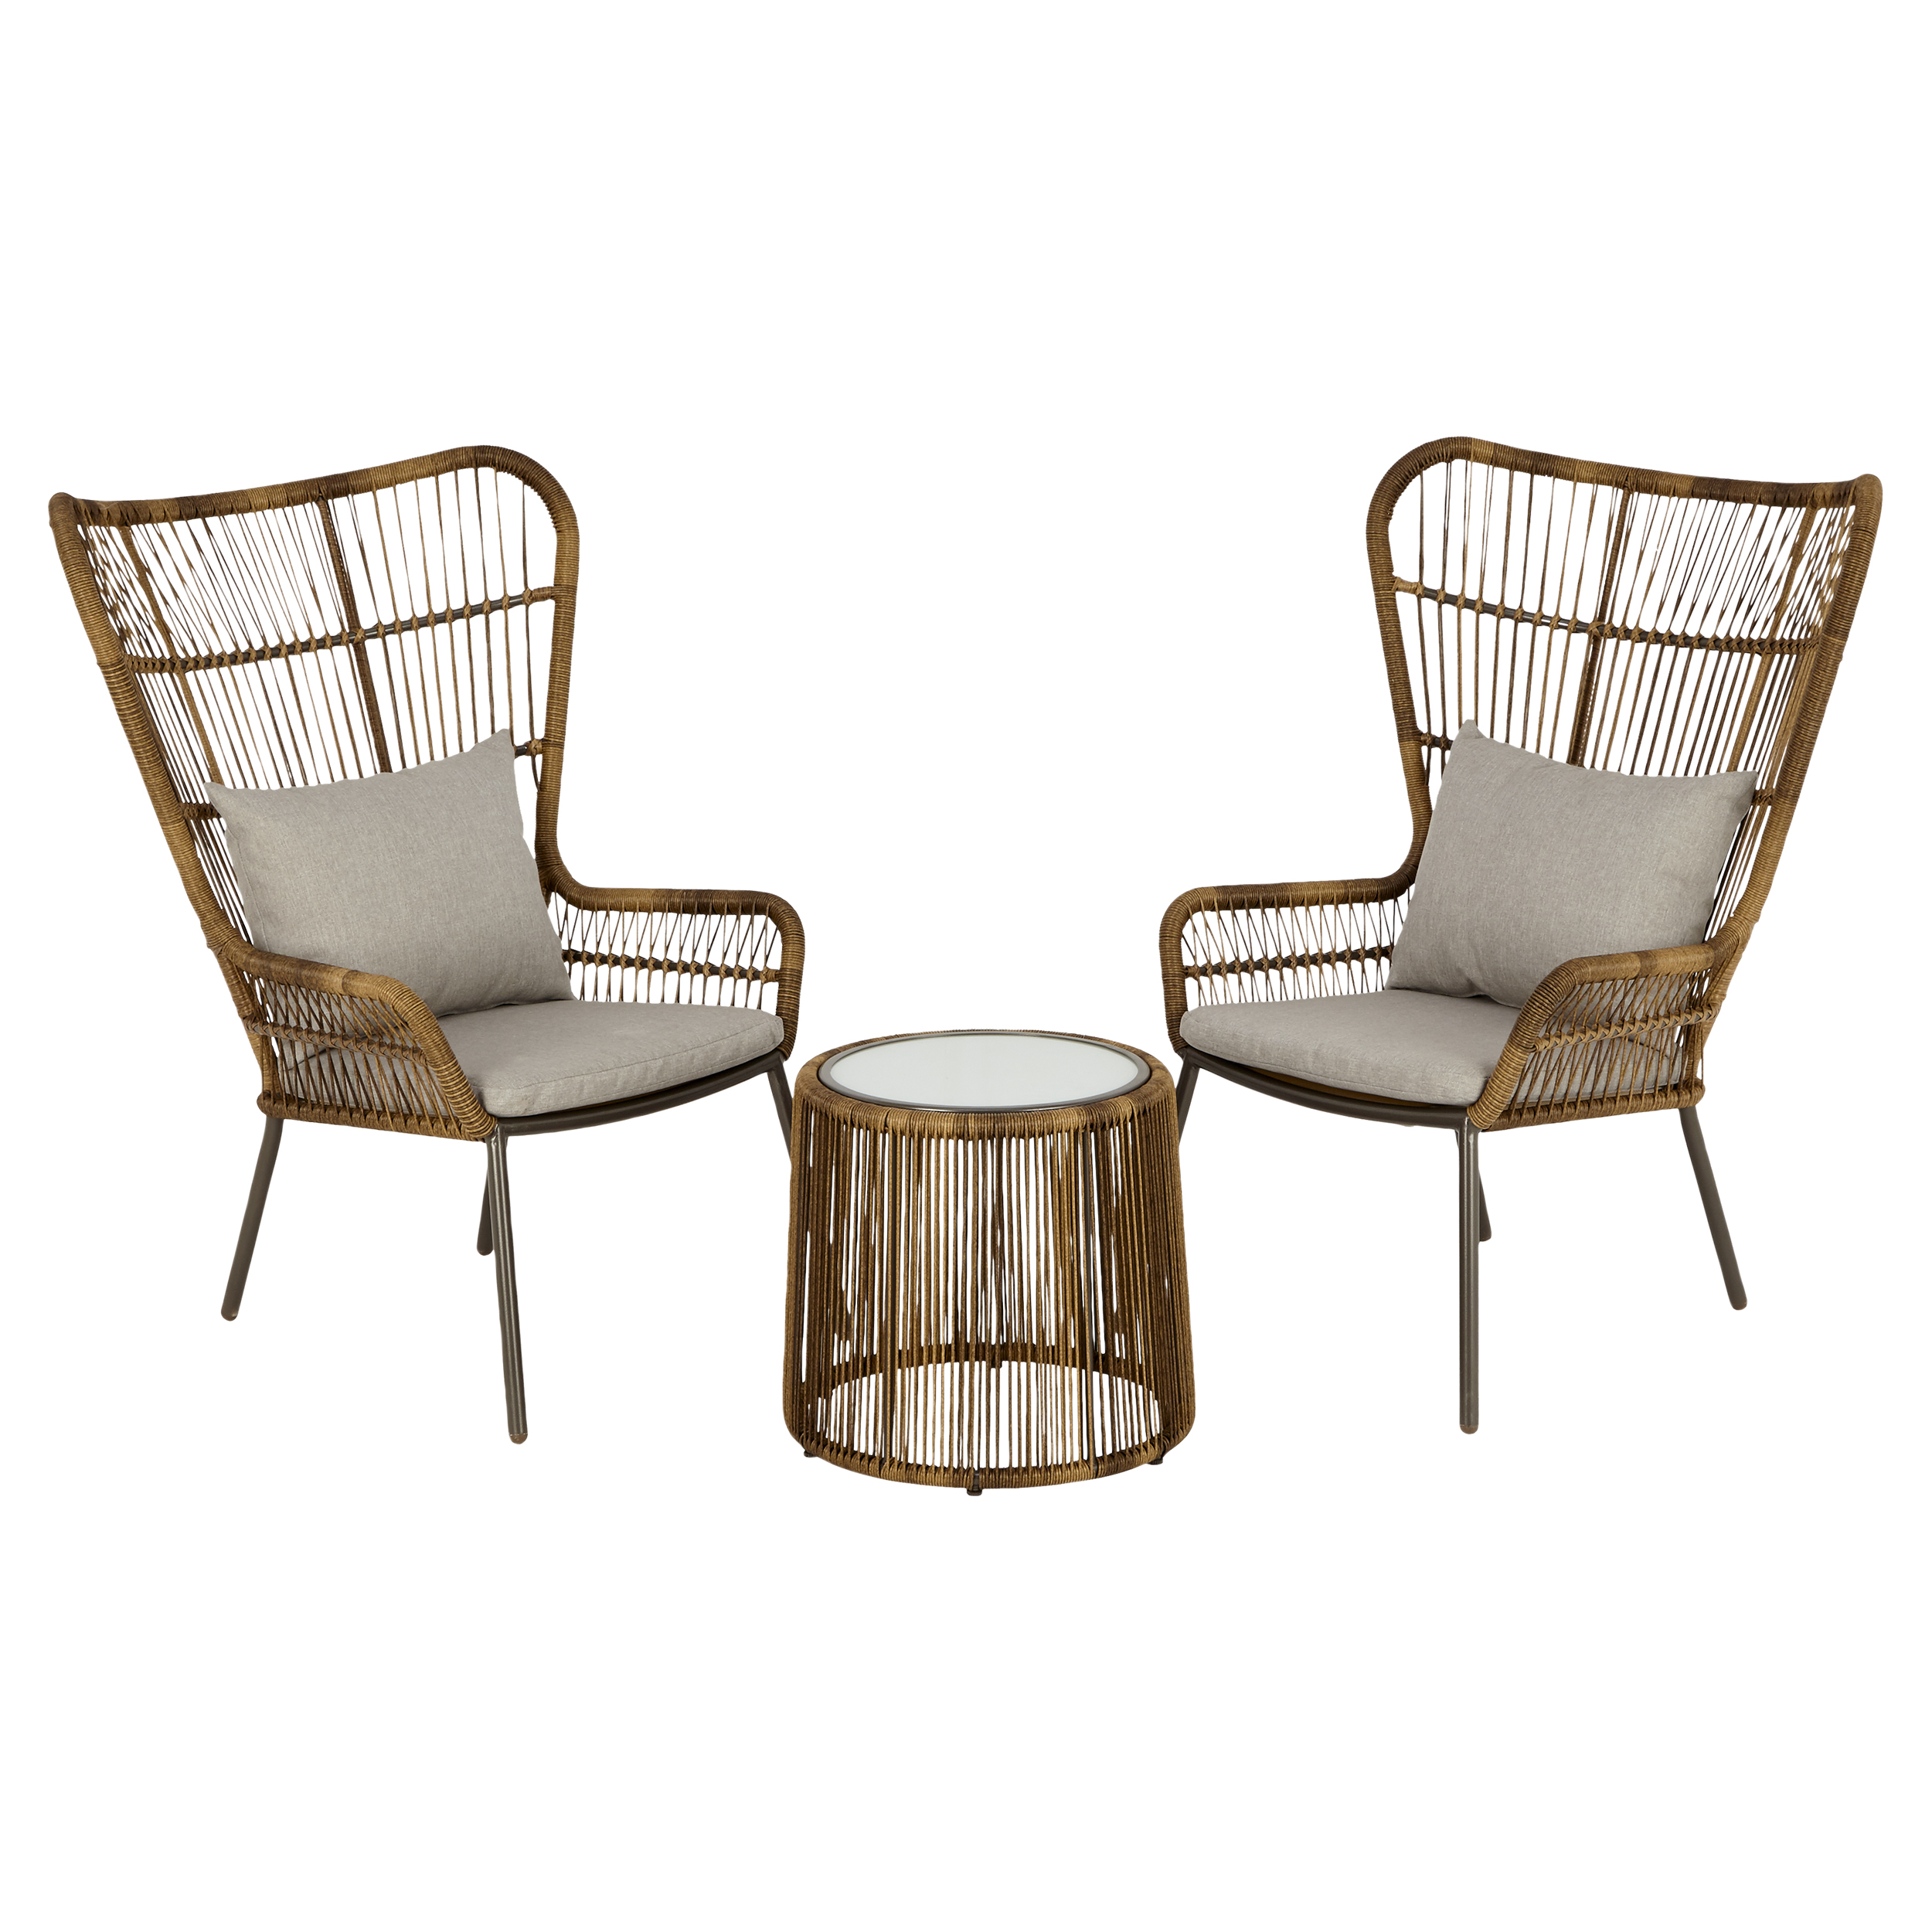 George Home Arizona bistro set £249.jpg